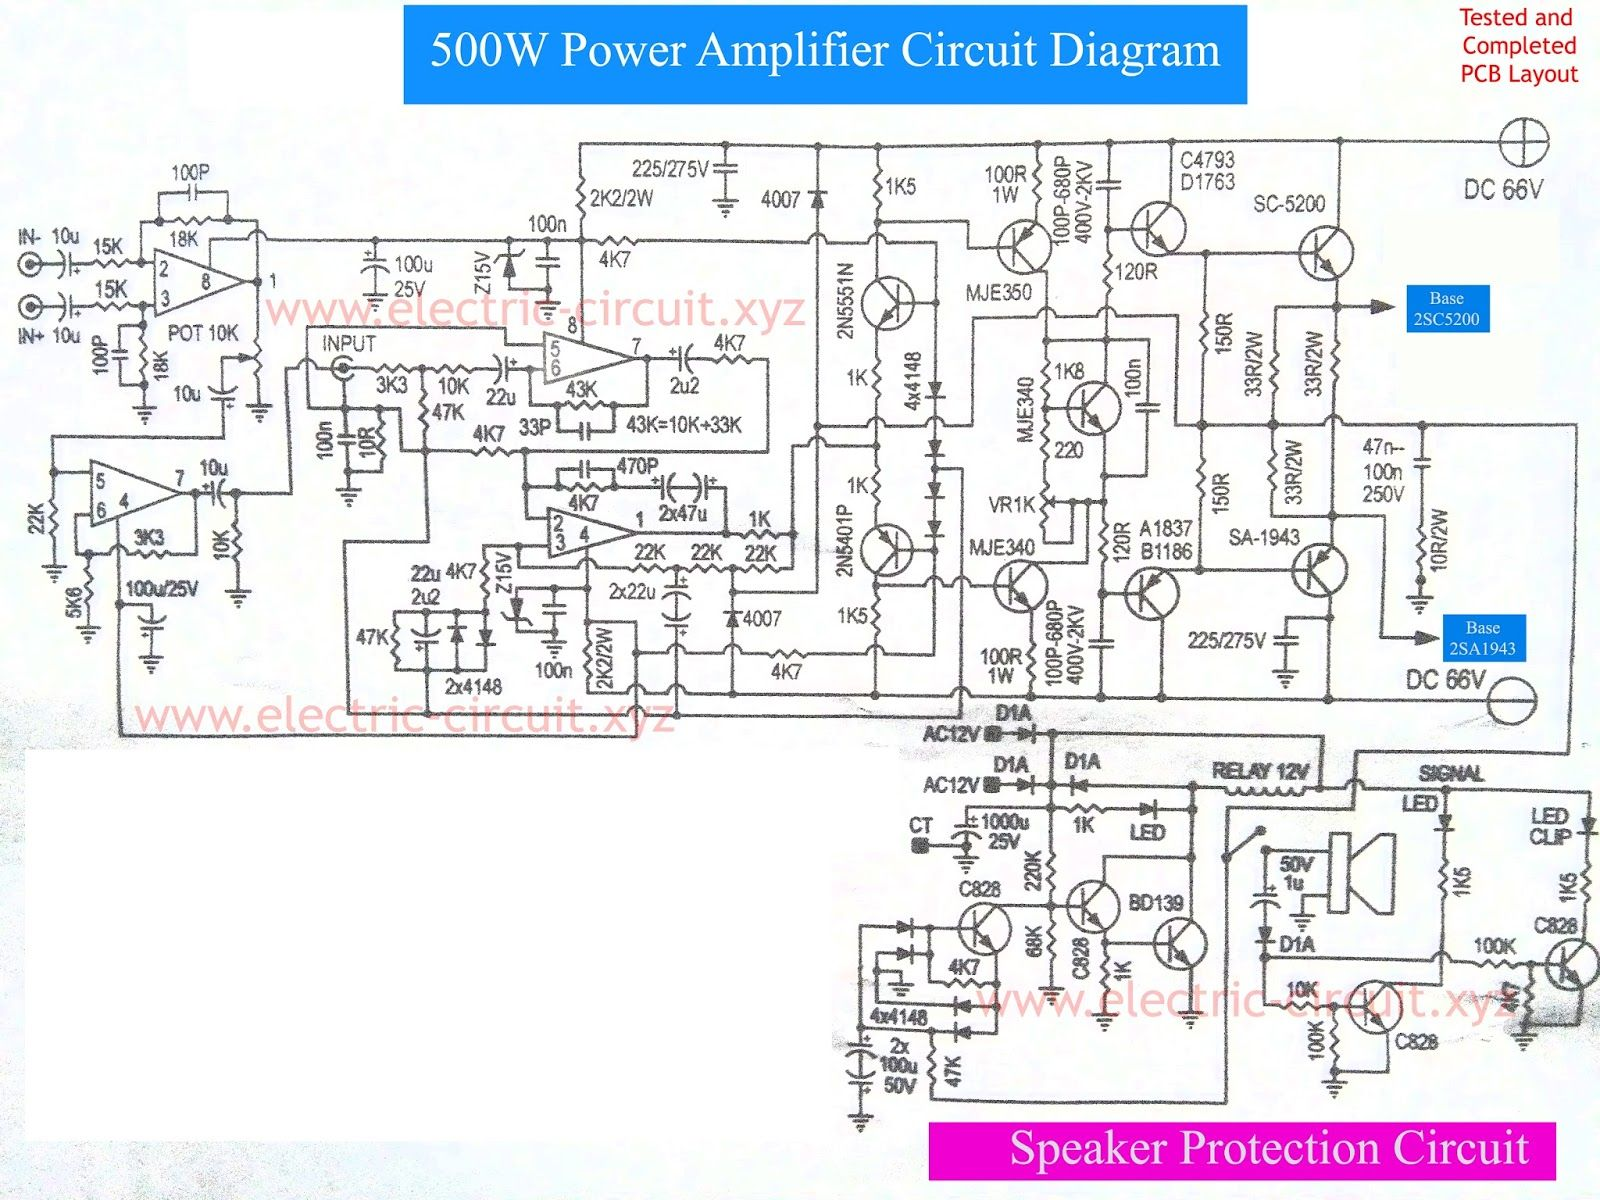 small resolution of power amplifier 500w with speaker protection circuit diagram